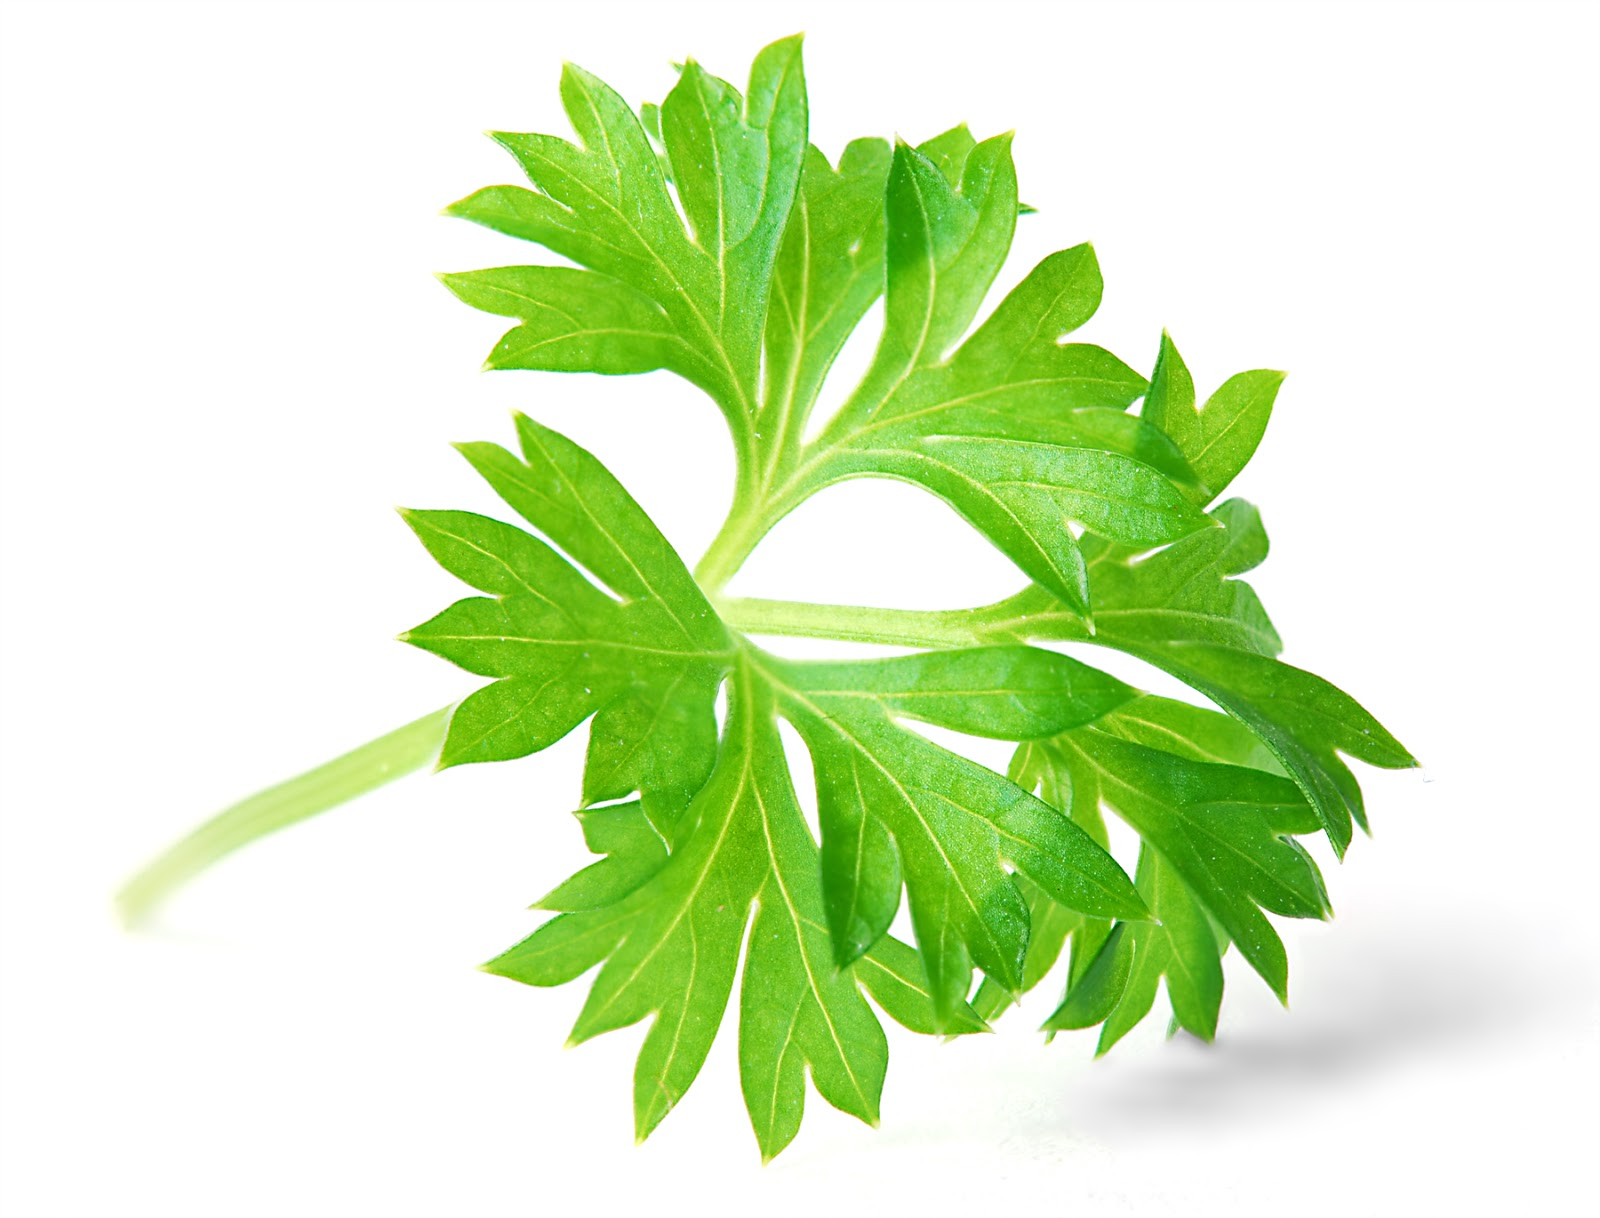 PARSLEY & ITS USES